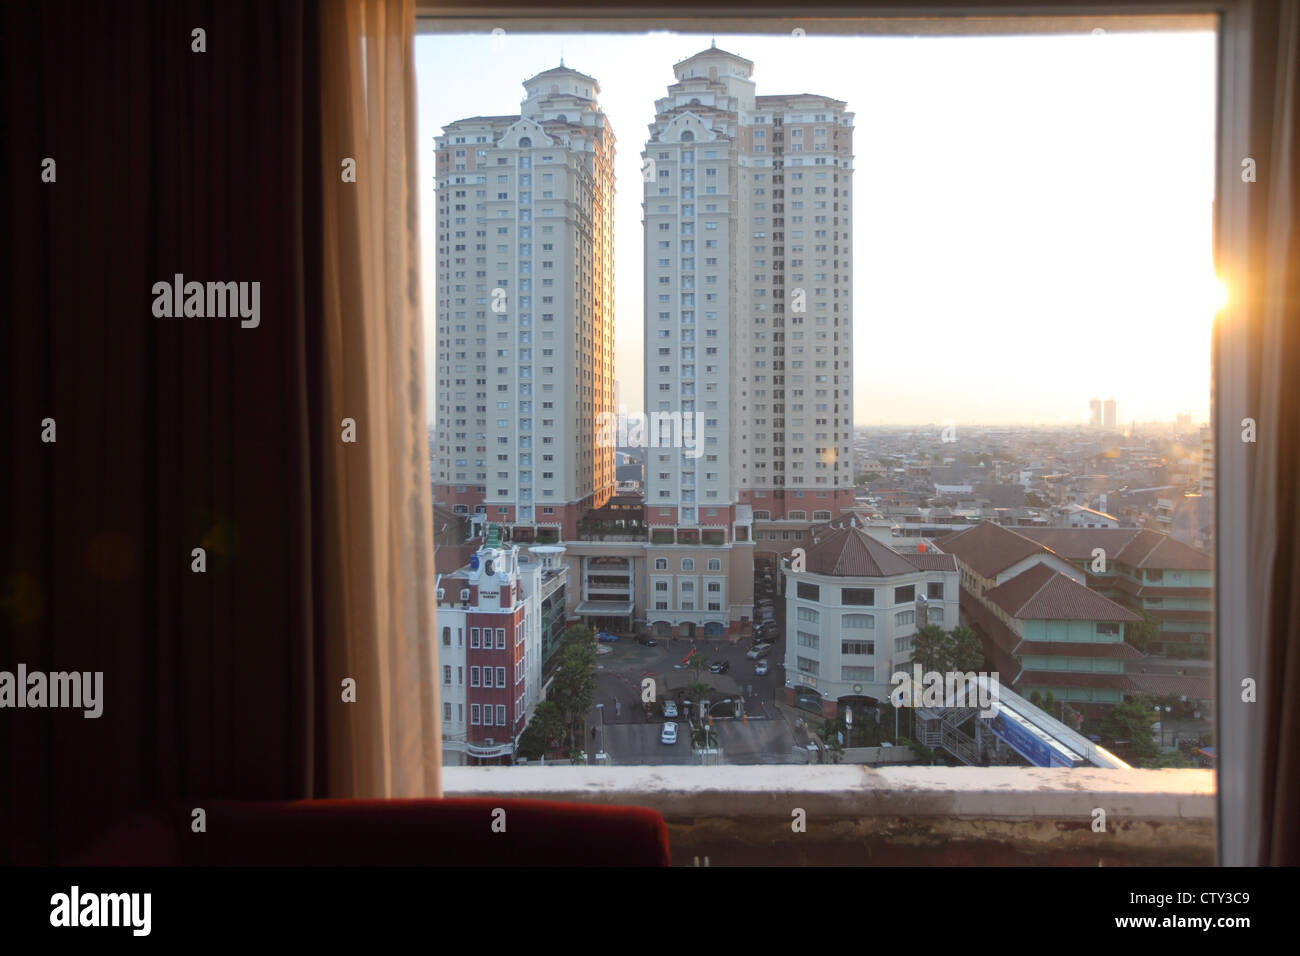 View From The Mercure Hotel Room High Resolution Stock Photography And Images Alamy